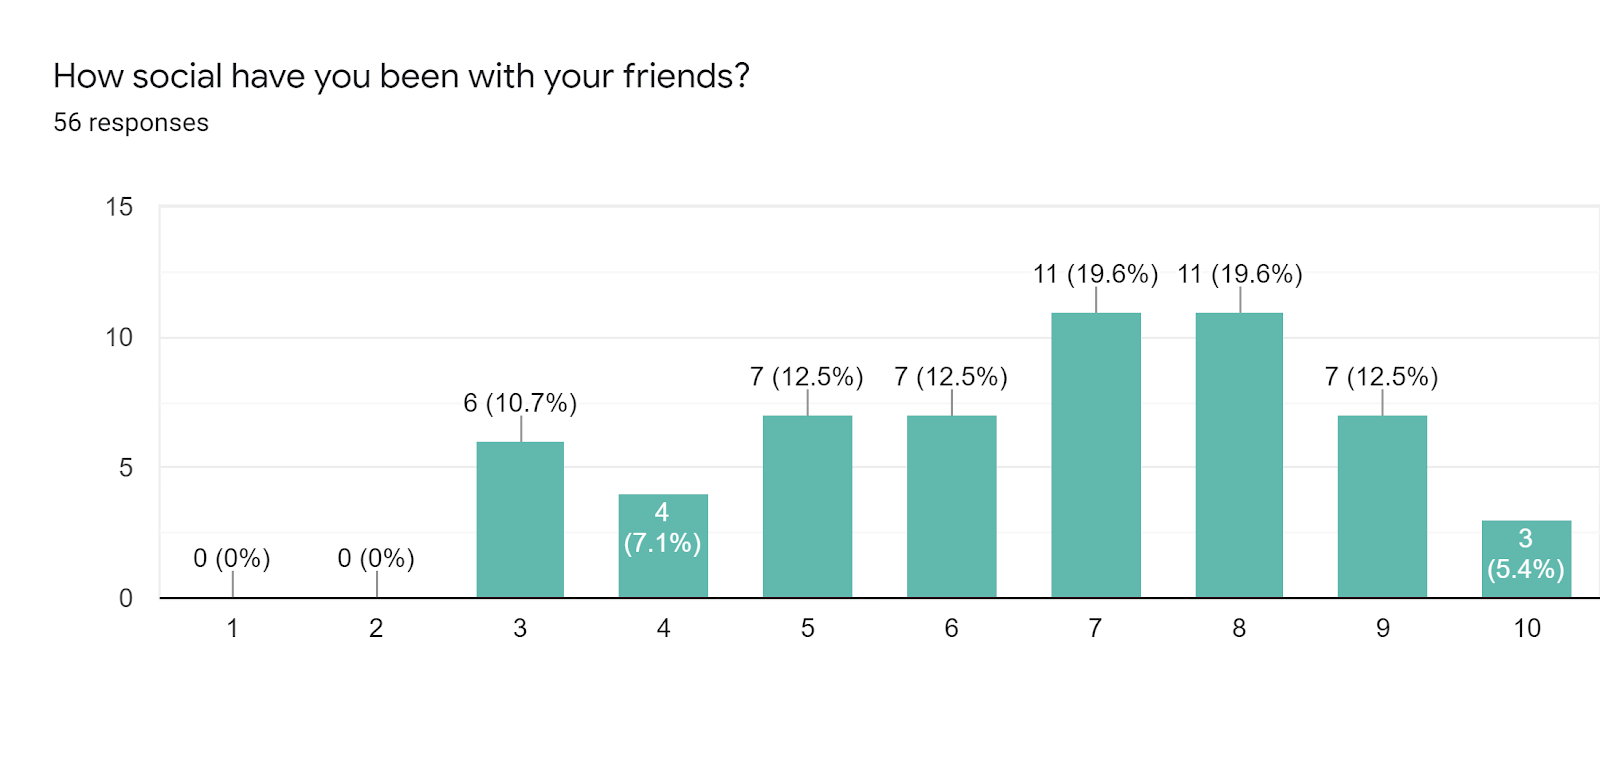 Forms response chart. Question title: How social have you been with your friends?. Number of responses: 56 responses.